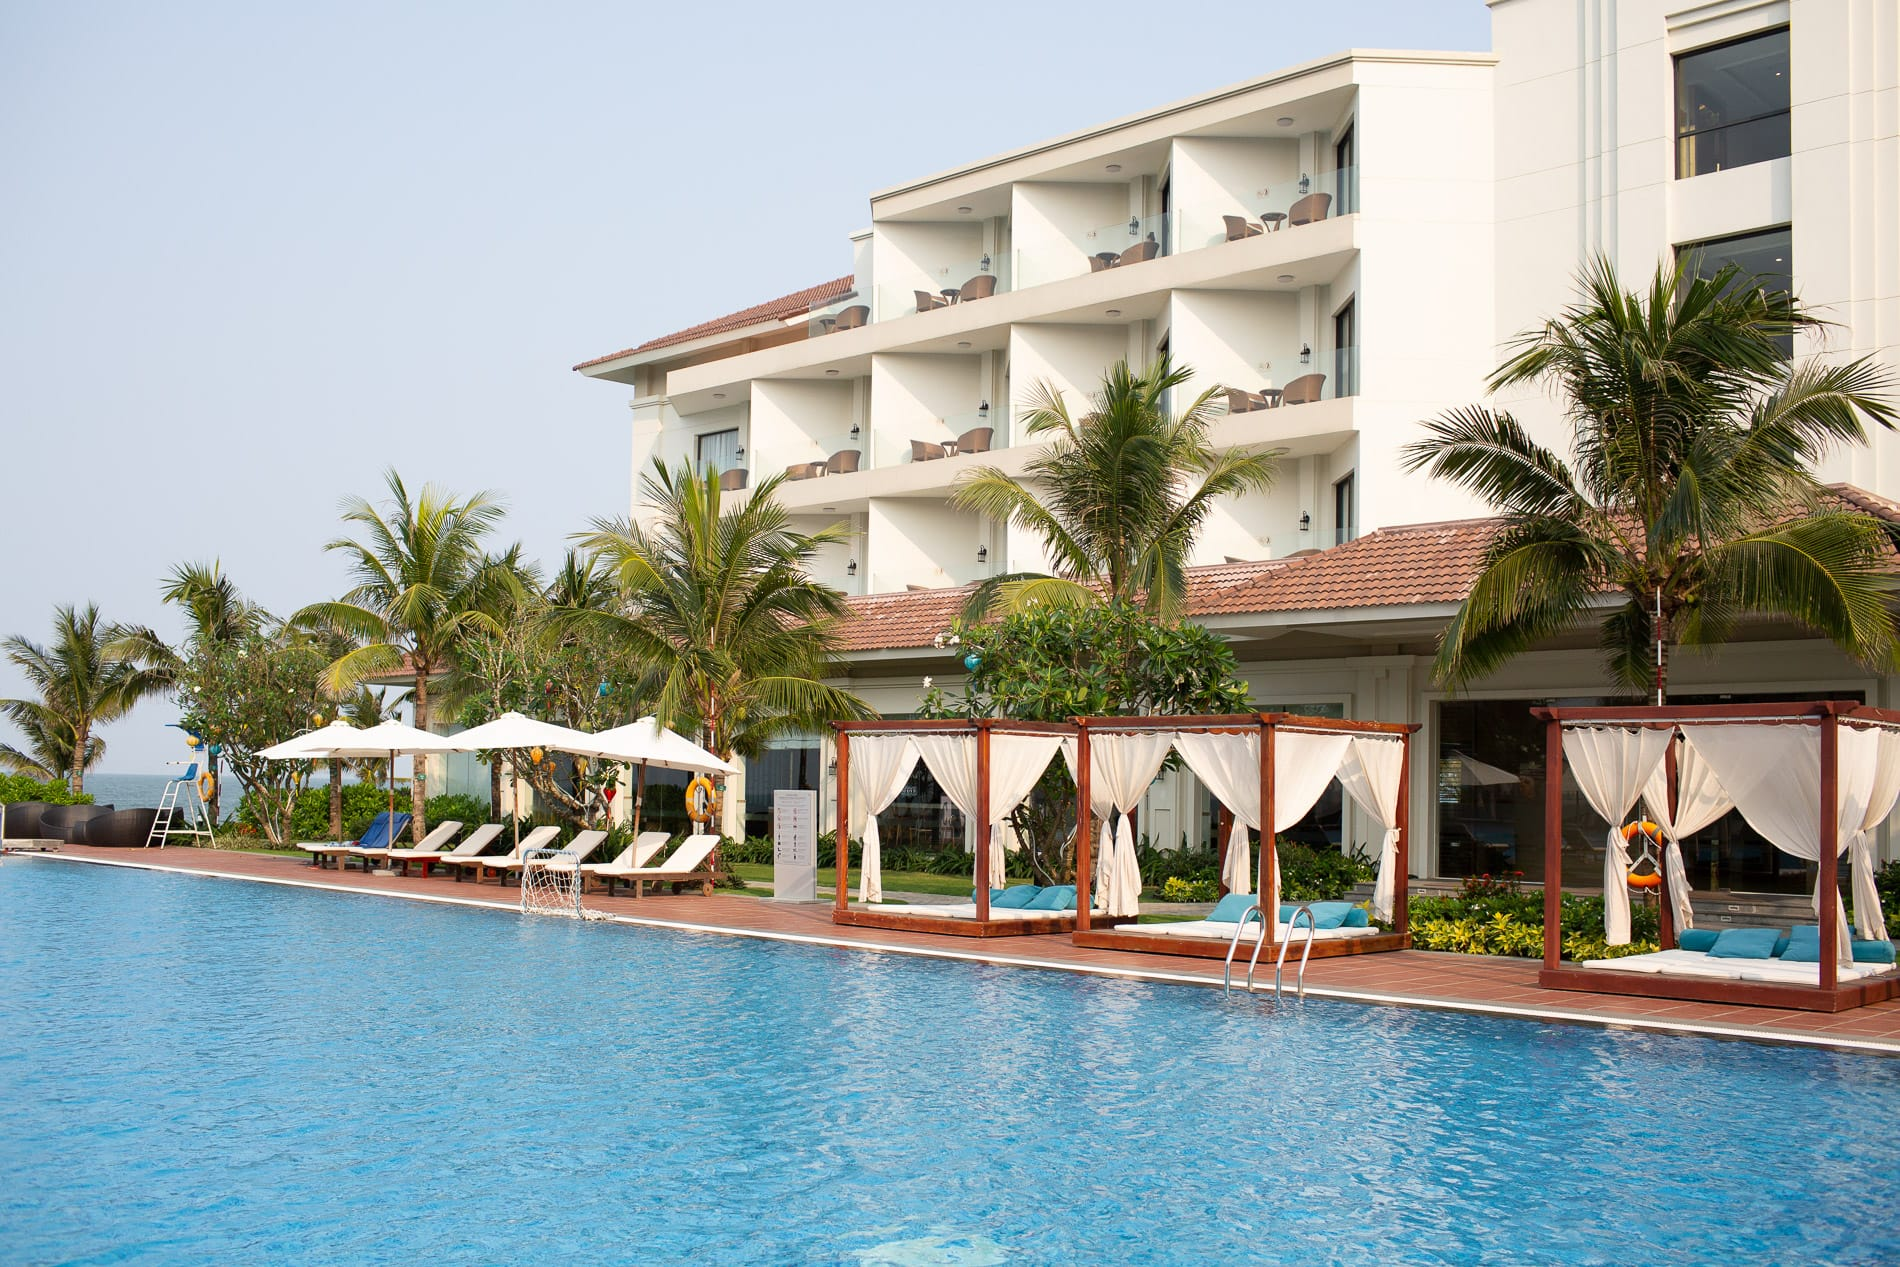 Vinpearl Resort - Hoi An Beach Resorts